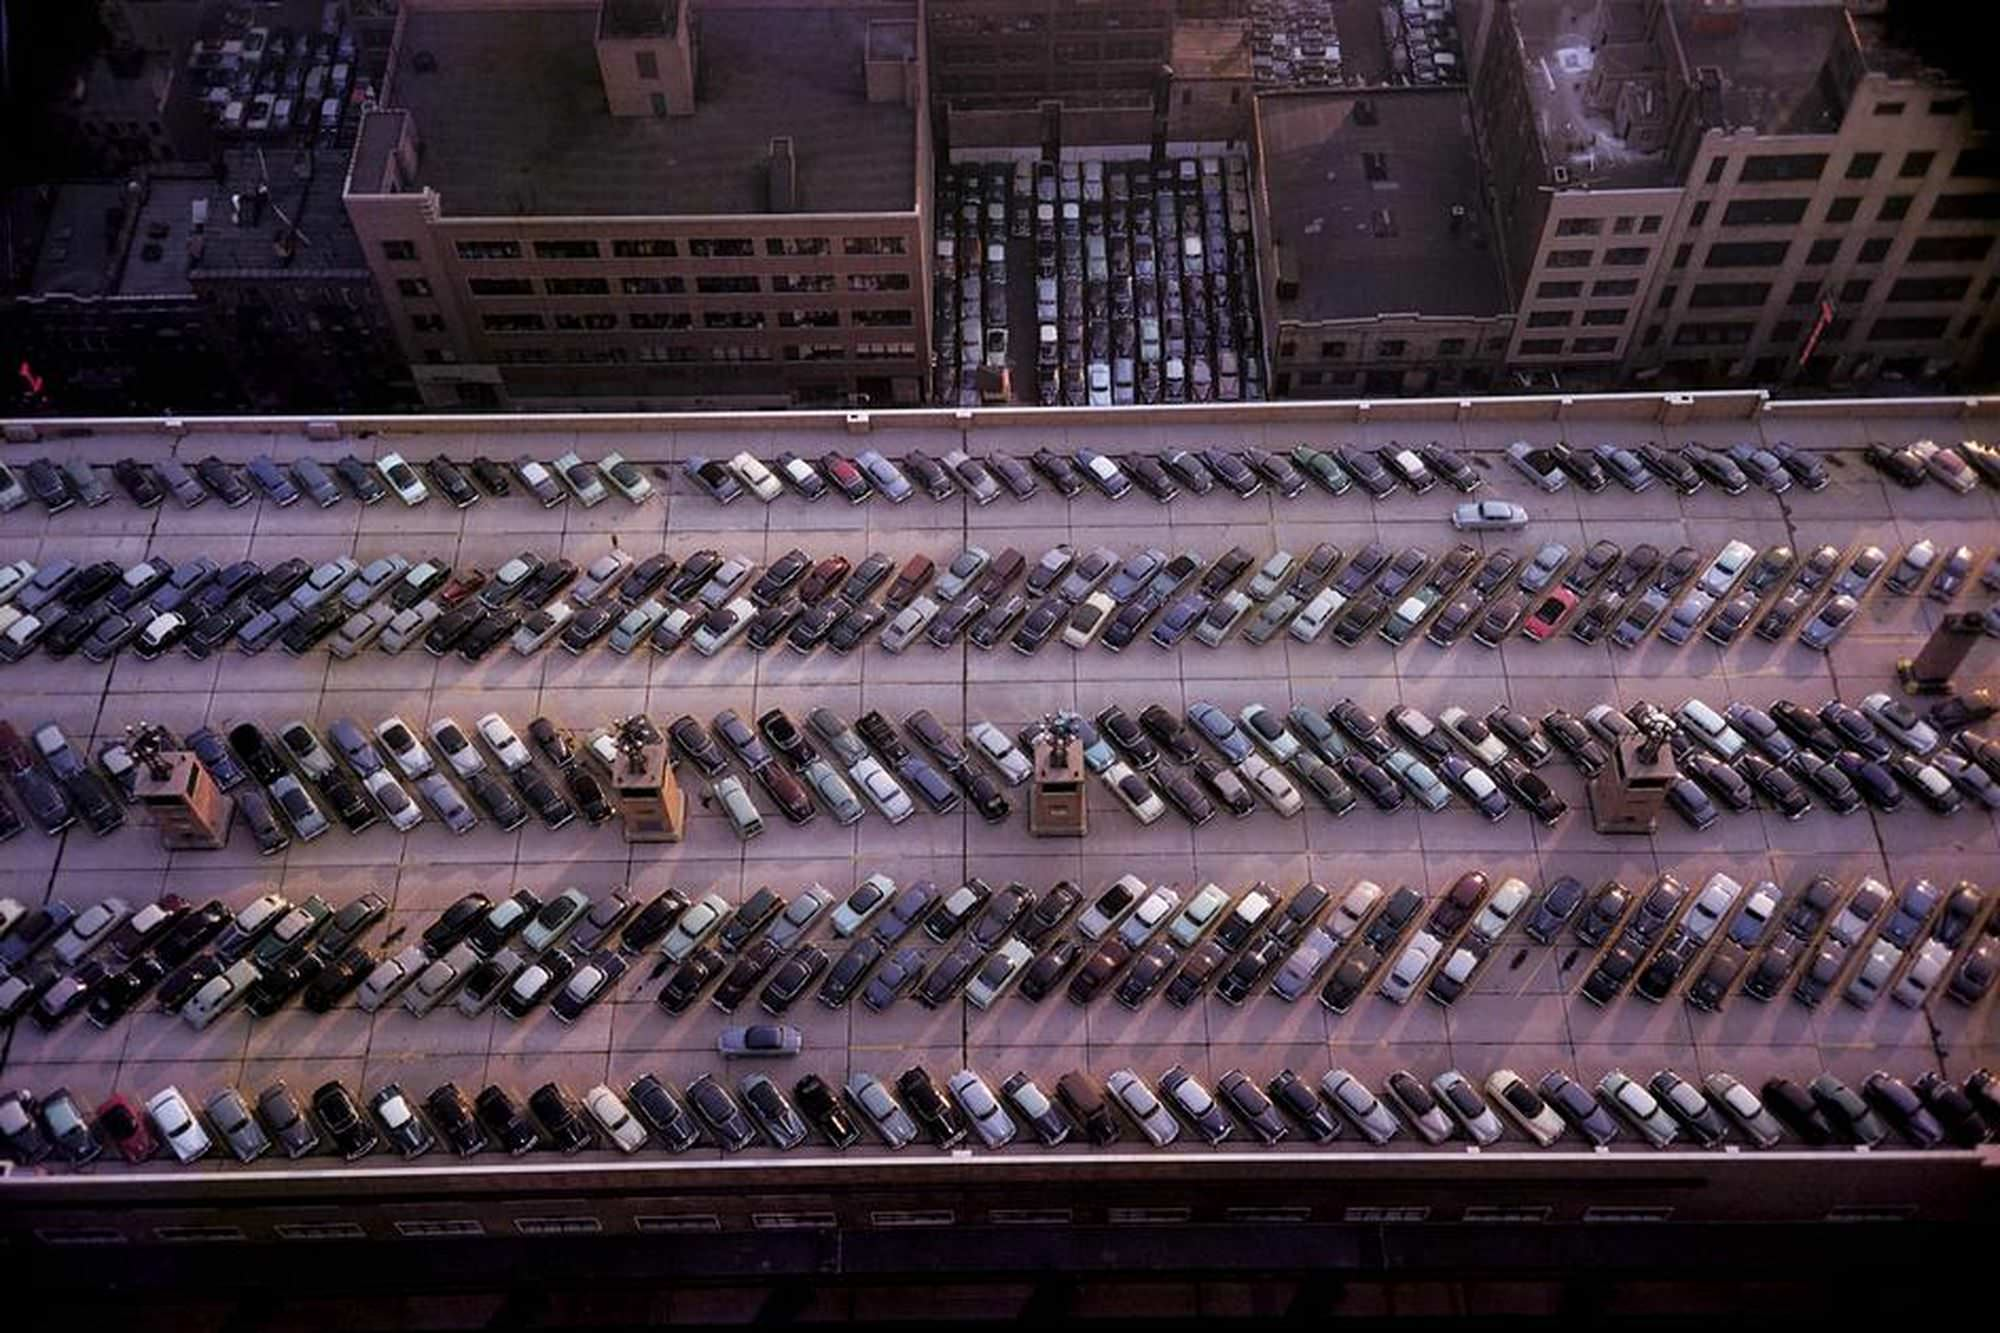 Parking Lots, New York City, USA, 1953.